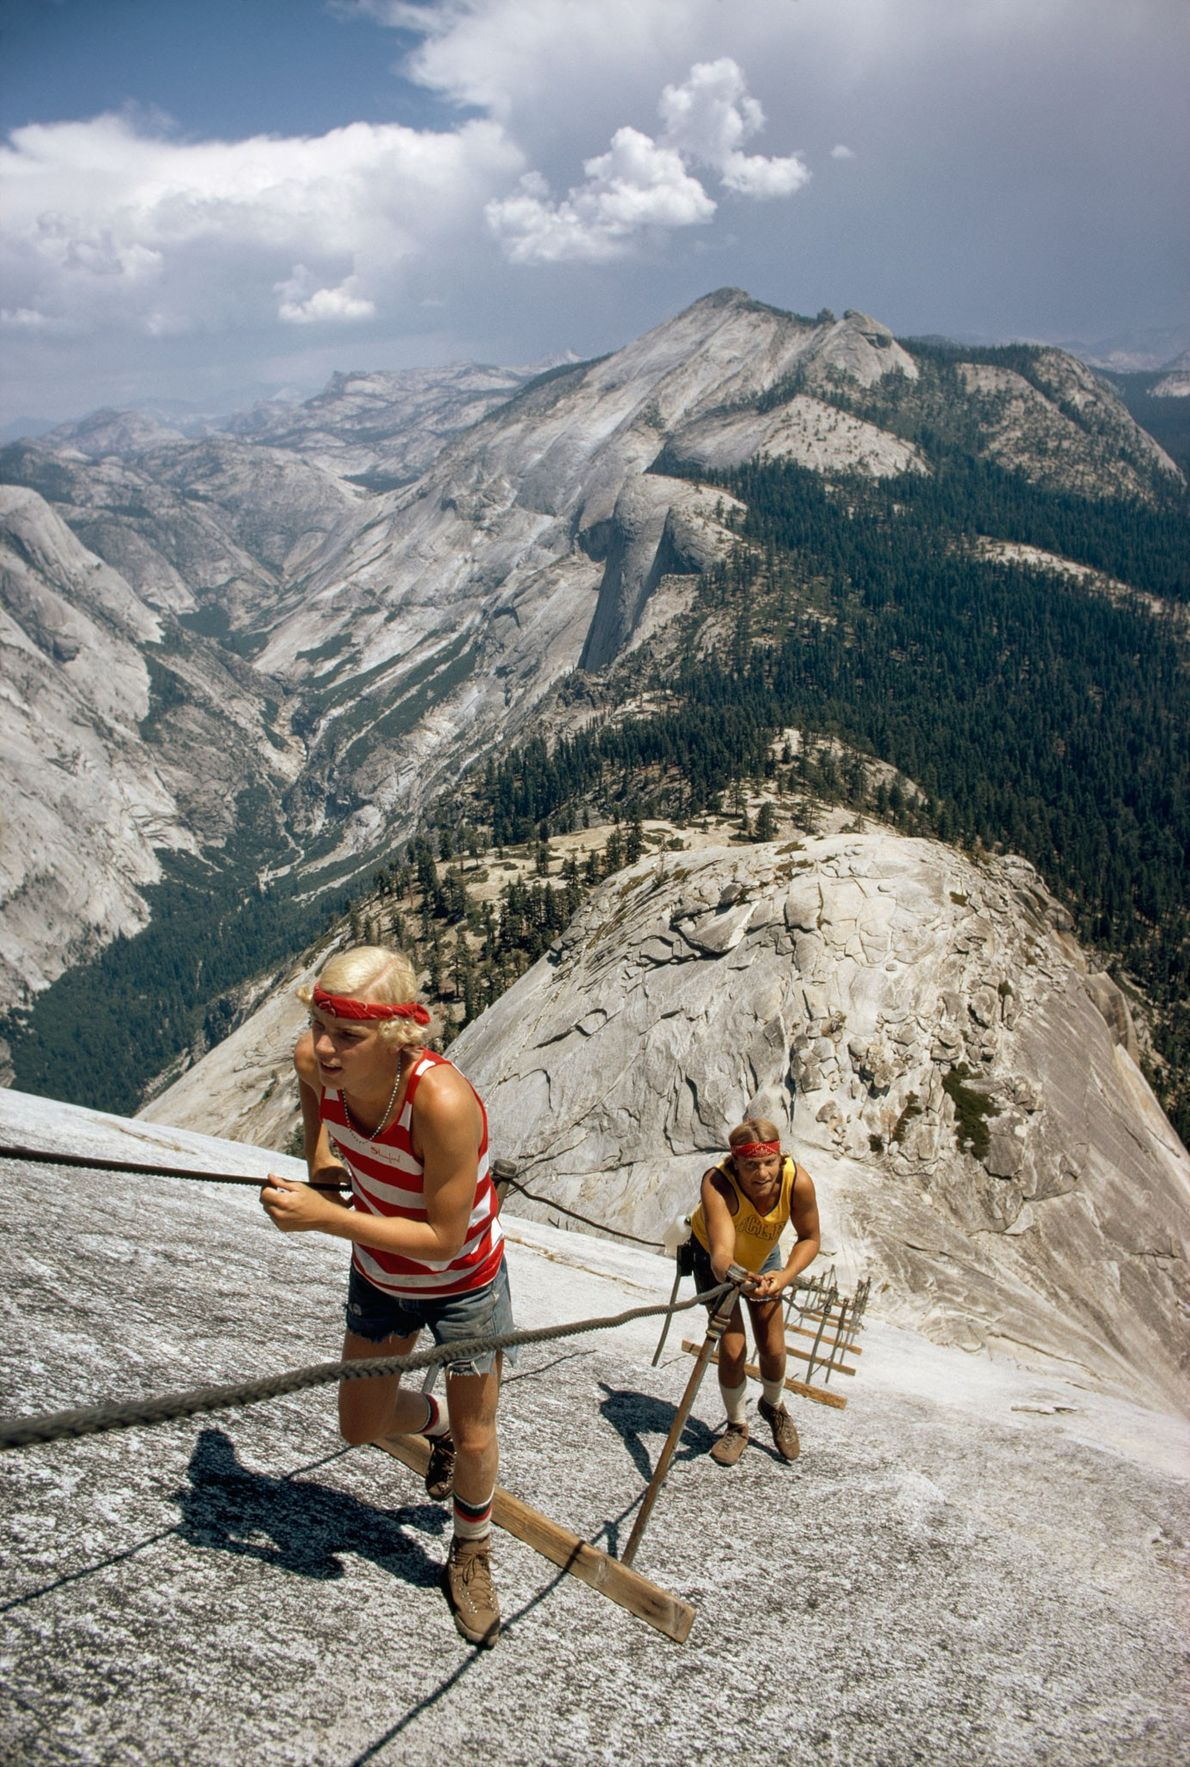 Rockfalls have changed the face of Half Dome, and climbers are adjusting to altered routes. This ...